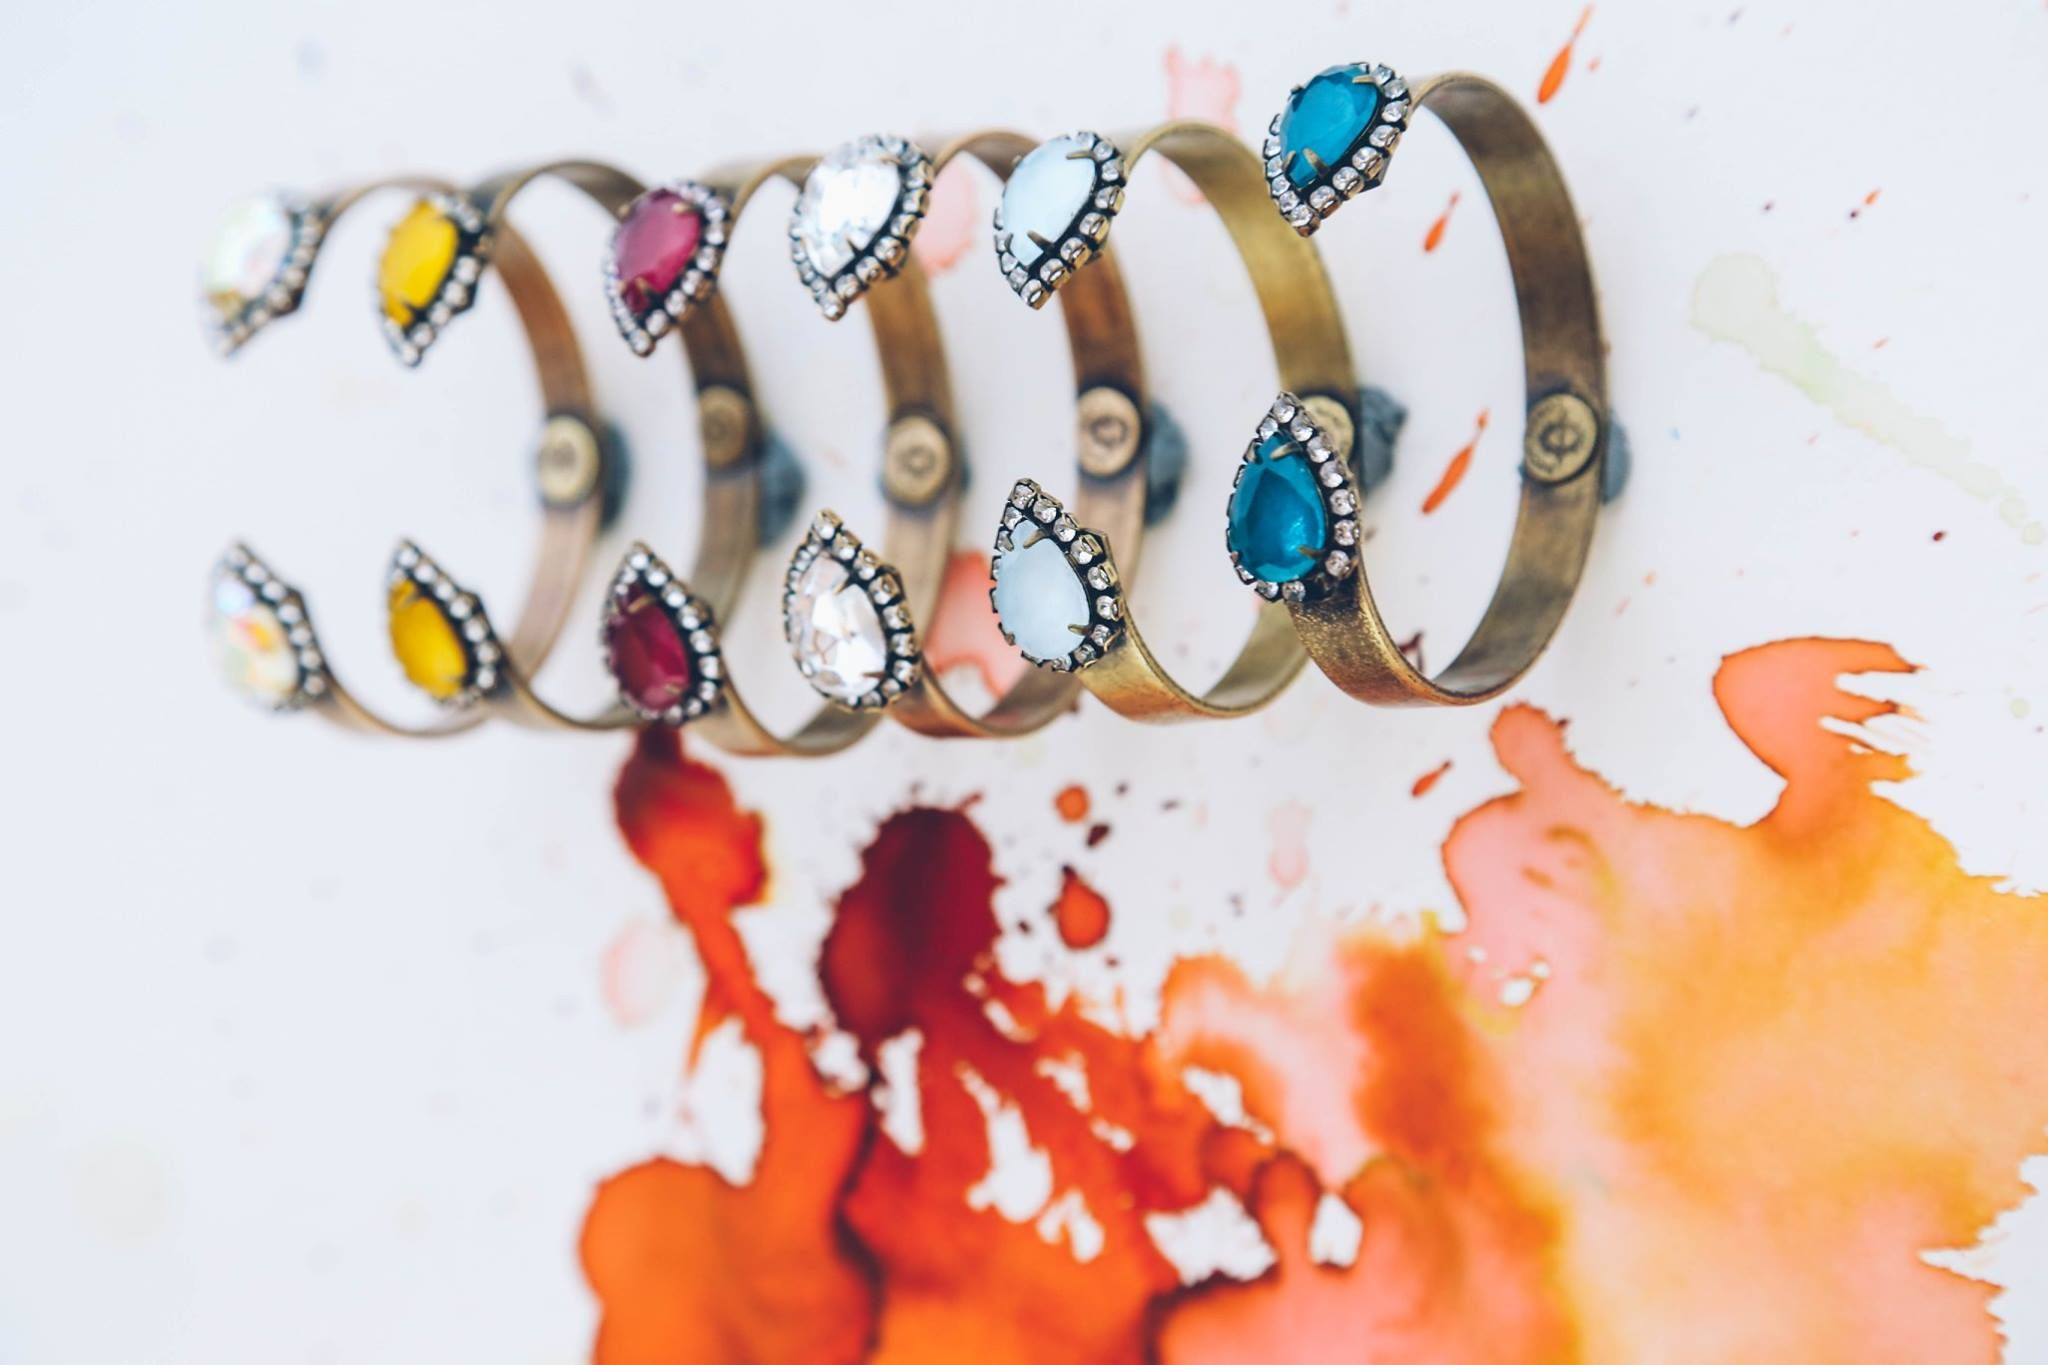 New Sarra Cuff Colors from Loren Hope! #FlauntRI